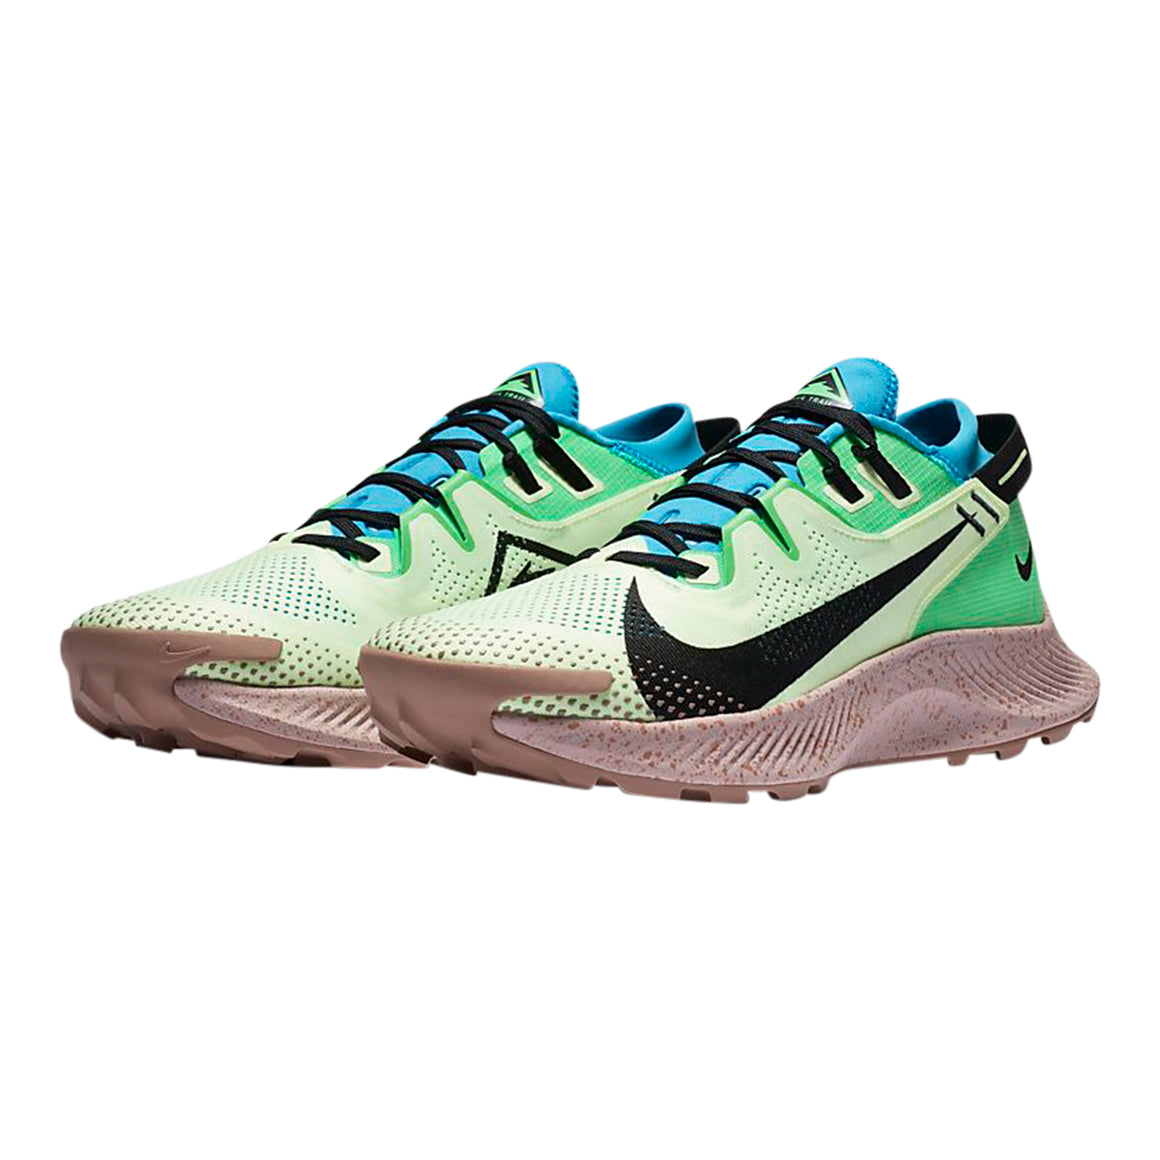 Pegasus Trail 2 for Men in Barely Volt/Black-Laser Blue